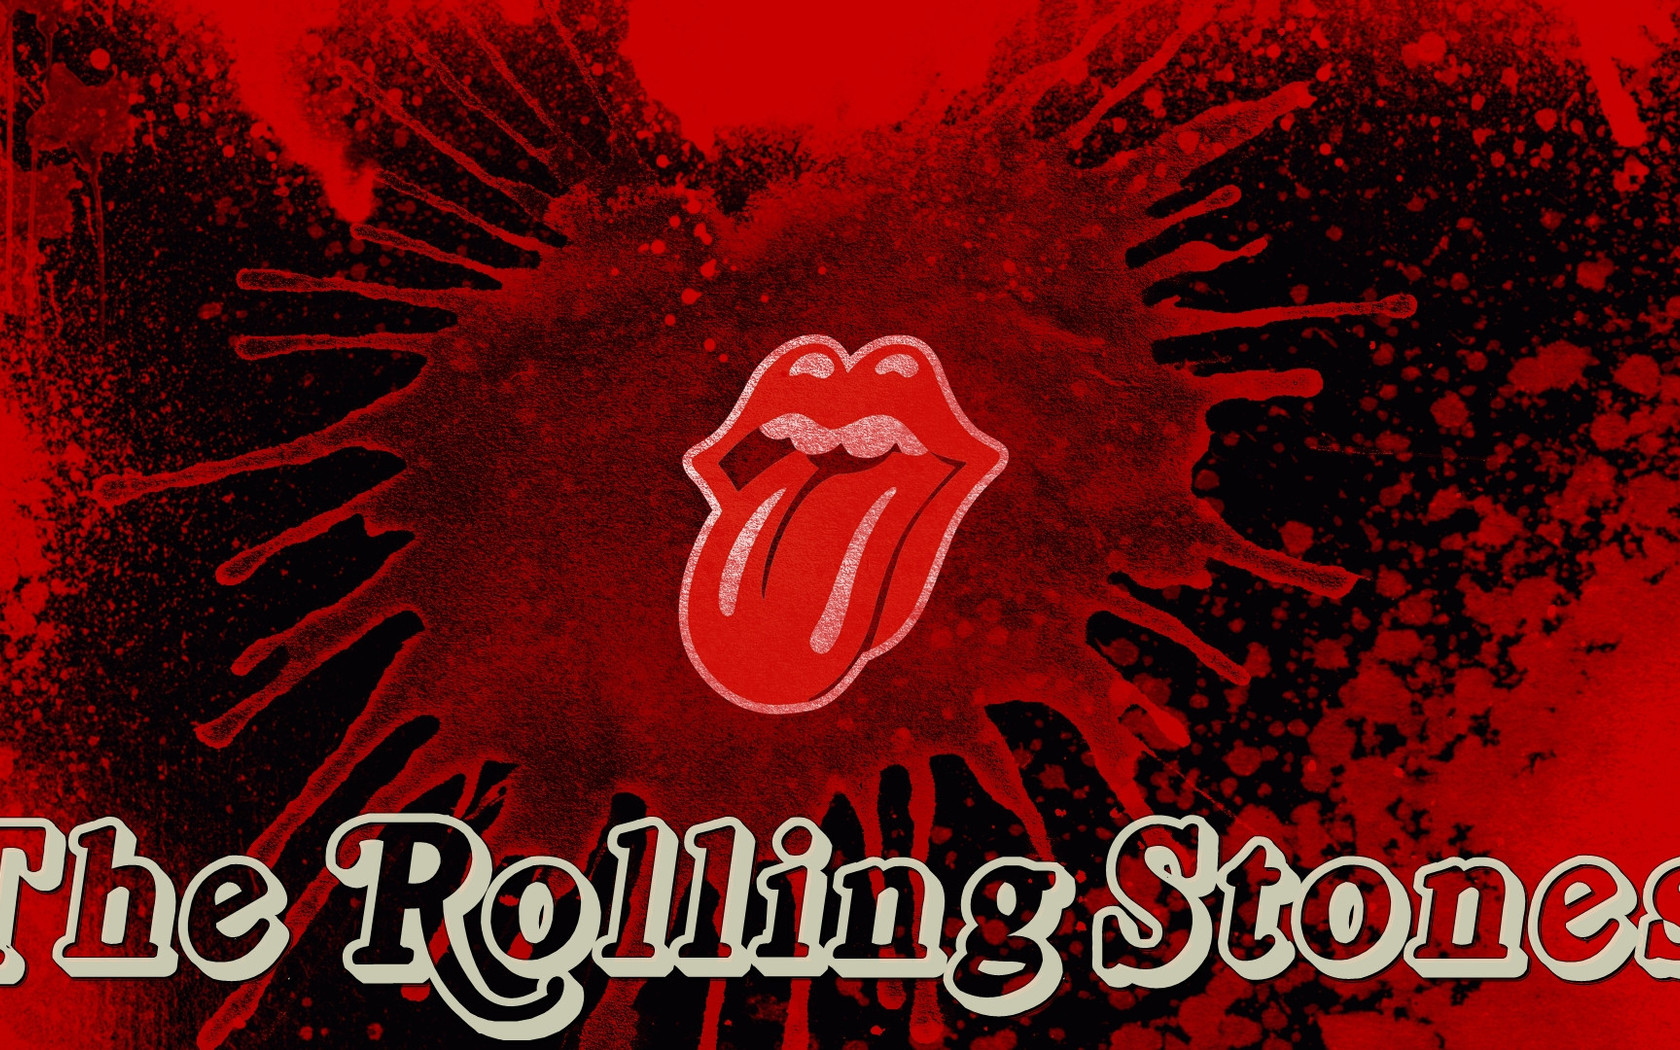 The Rolling Stones tongue logo Widescreen Wallpaper   21327 1680x1050